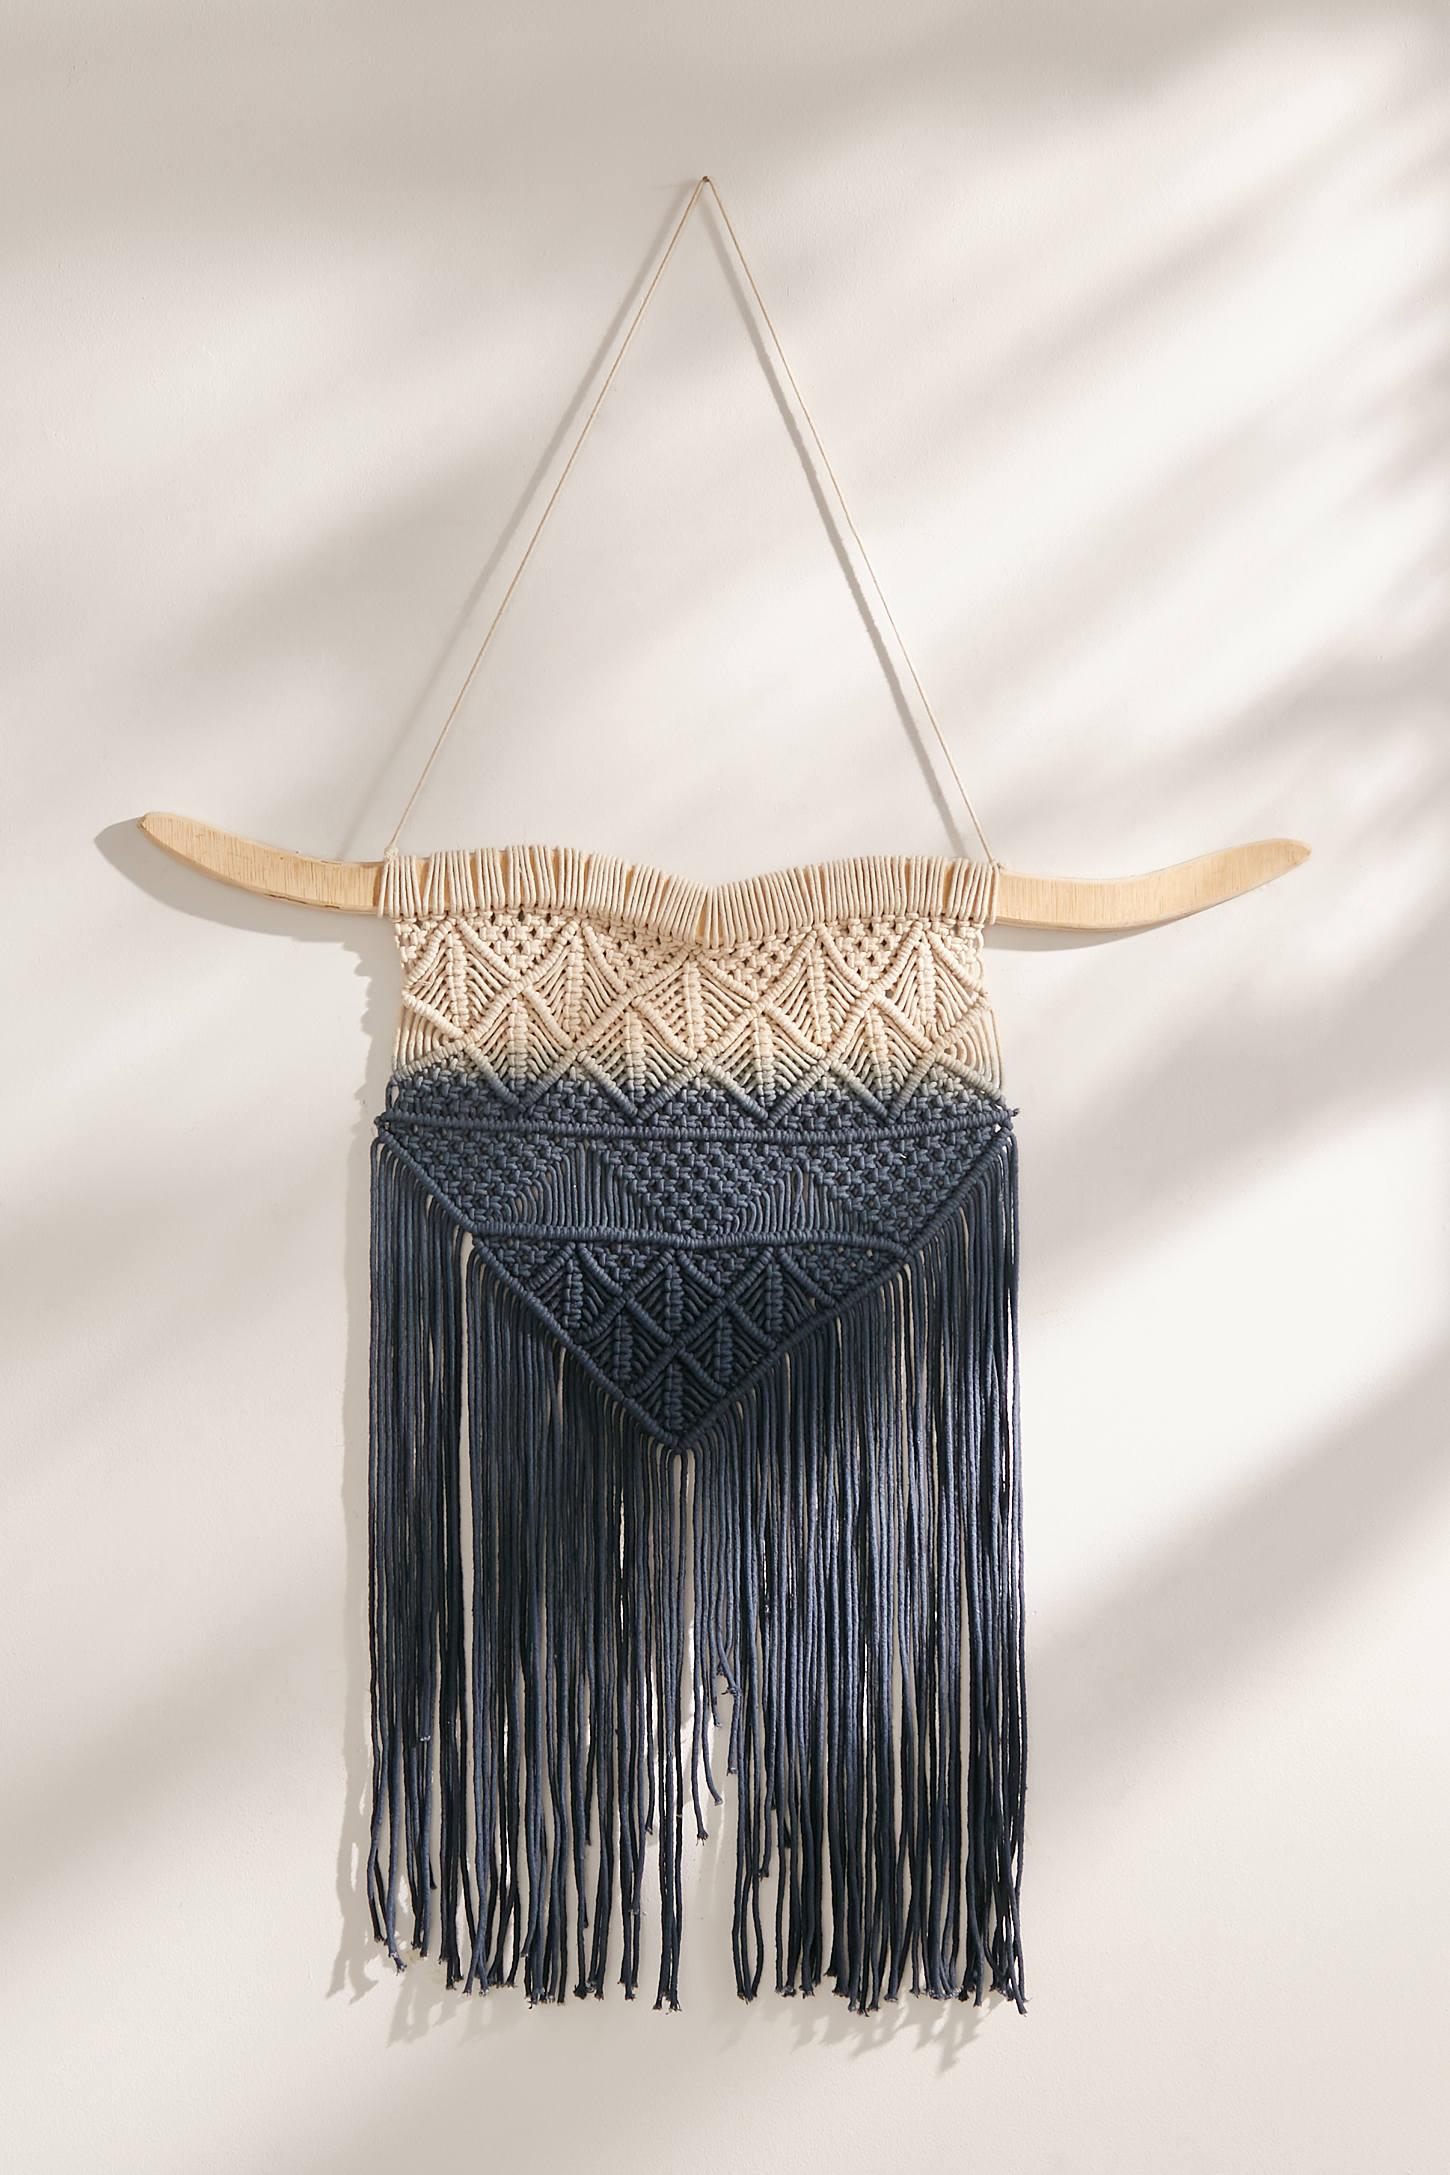 Ombre Macramé Wall Hanging | Urban Outfitters